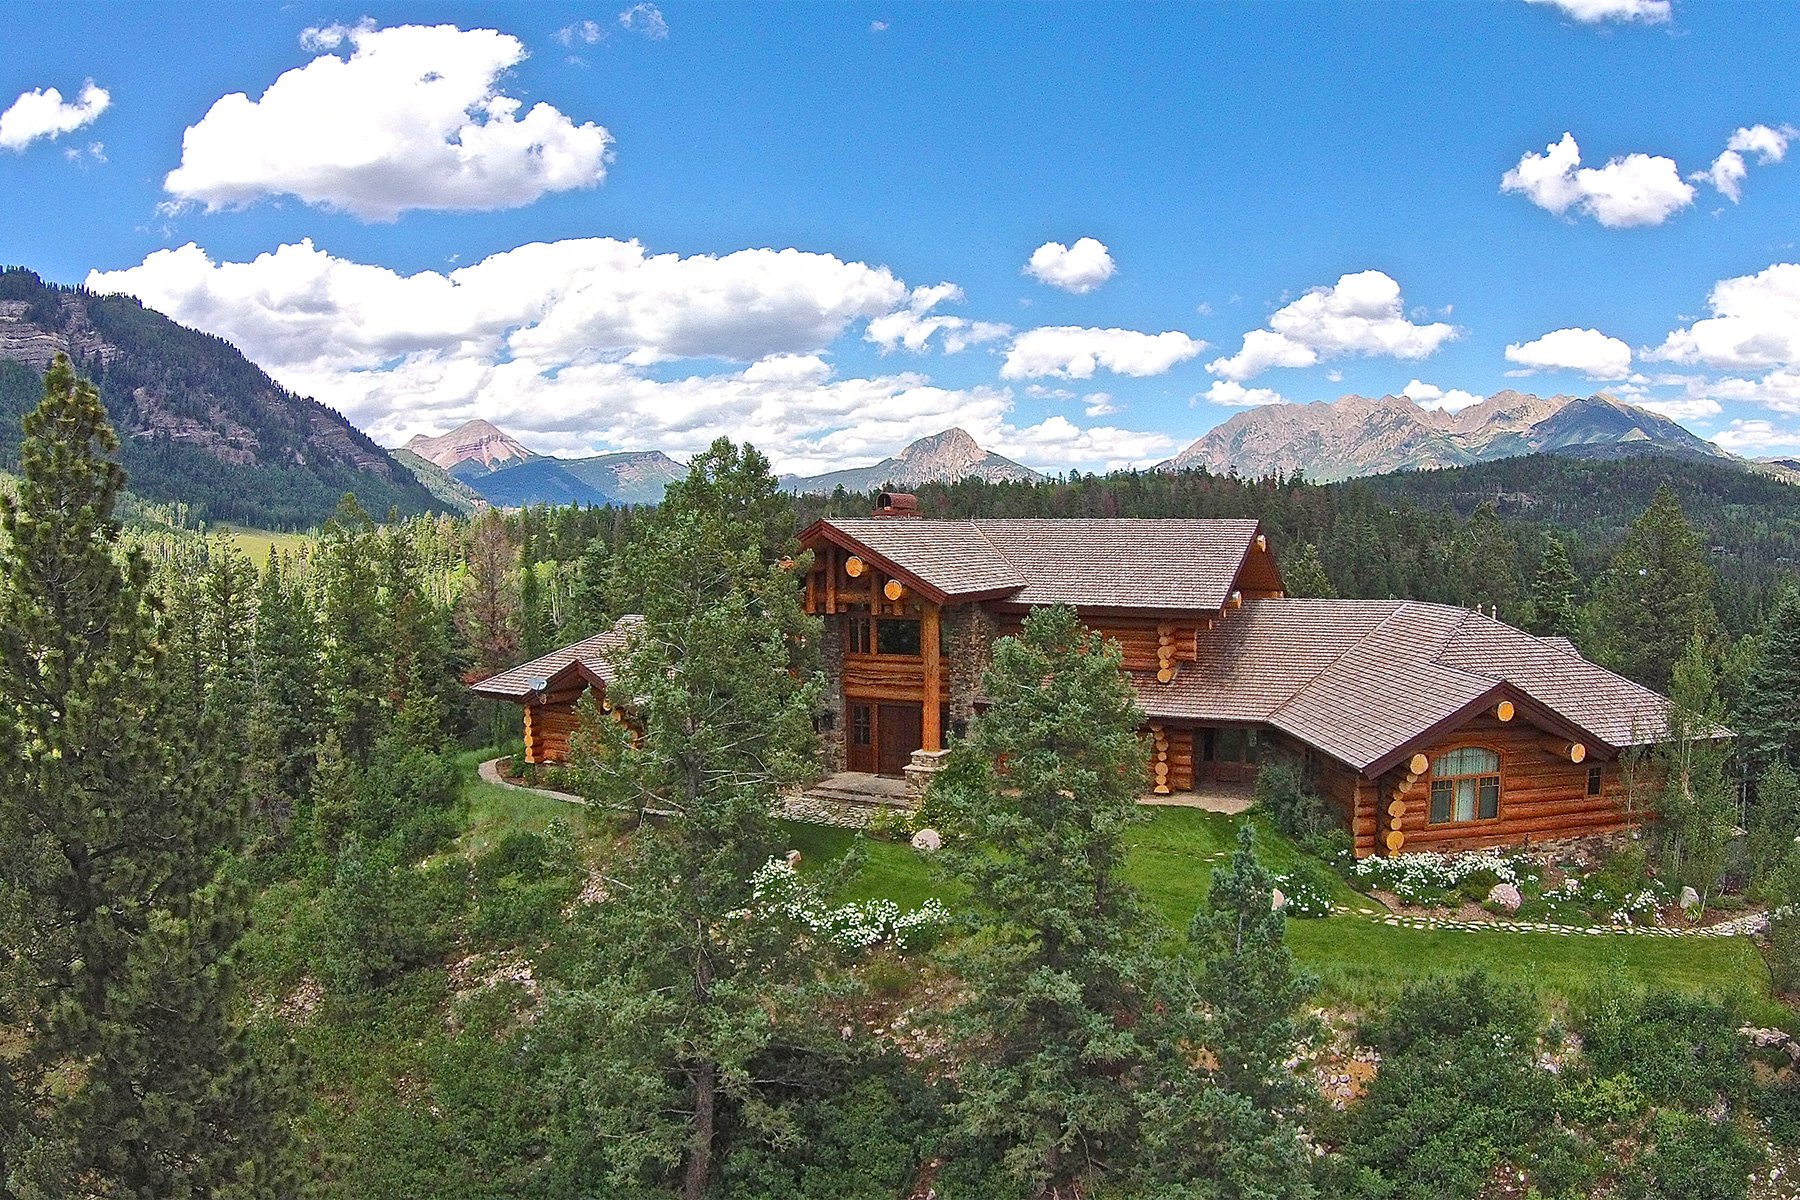 Single Family Home for Sale at Mountain View Estate 464 Pinnacle View Drive Durango, Colorado 81301 United States